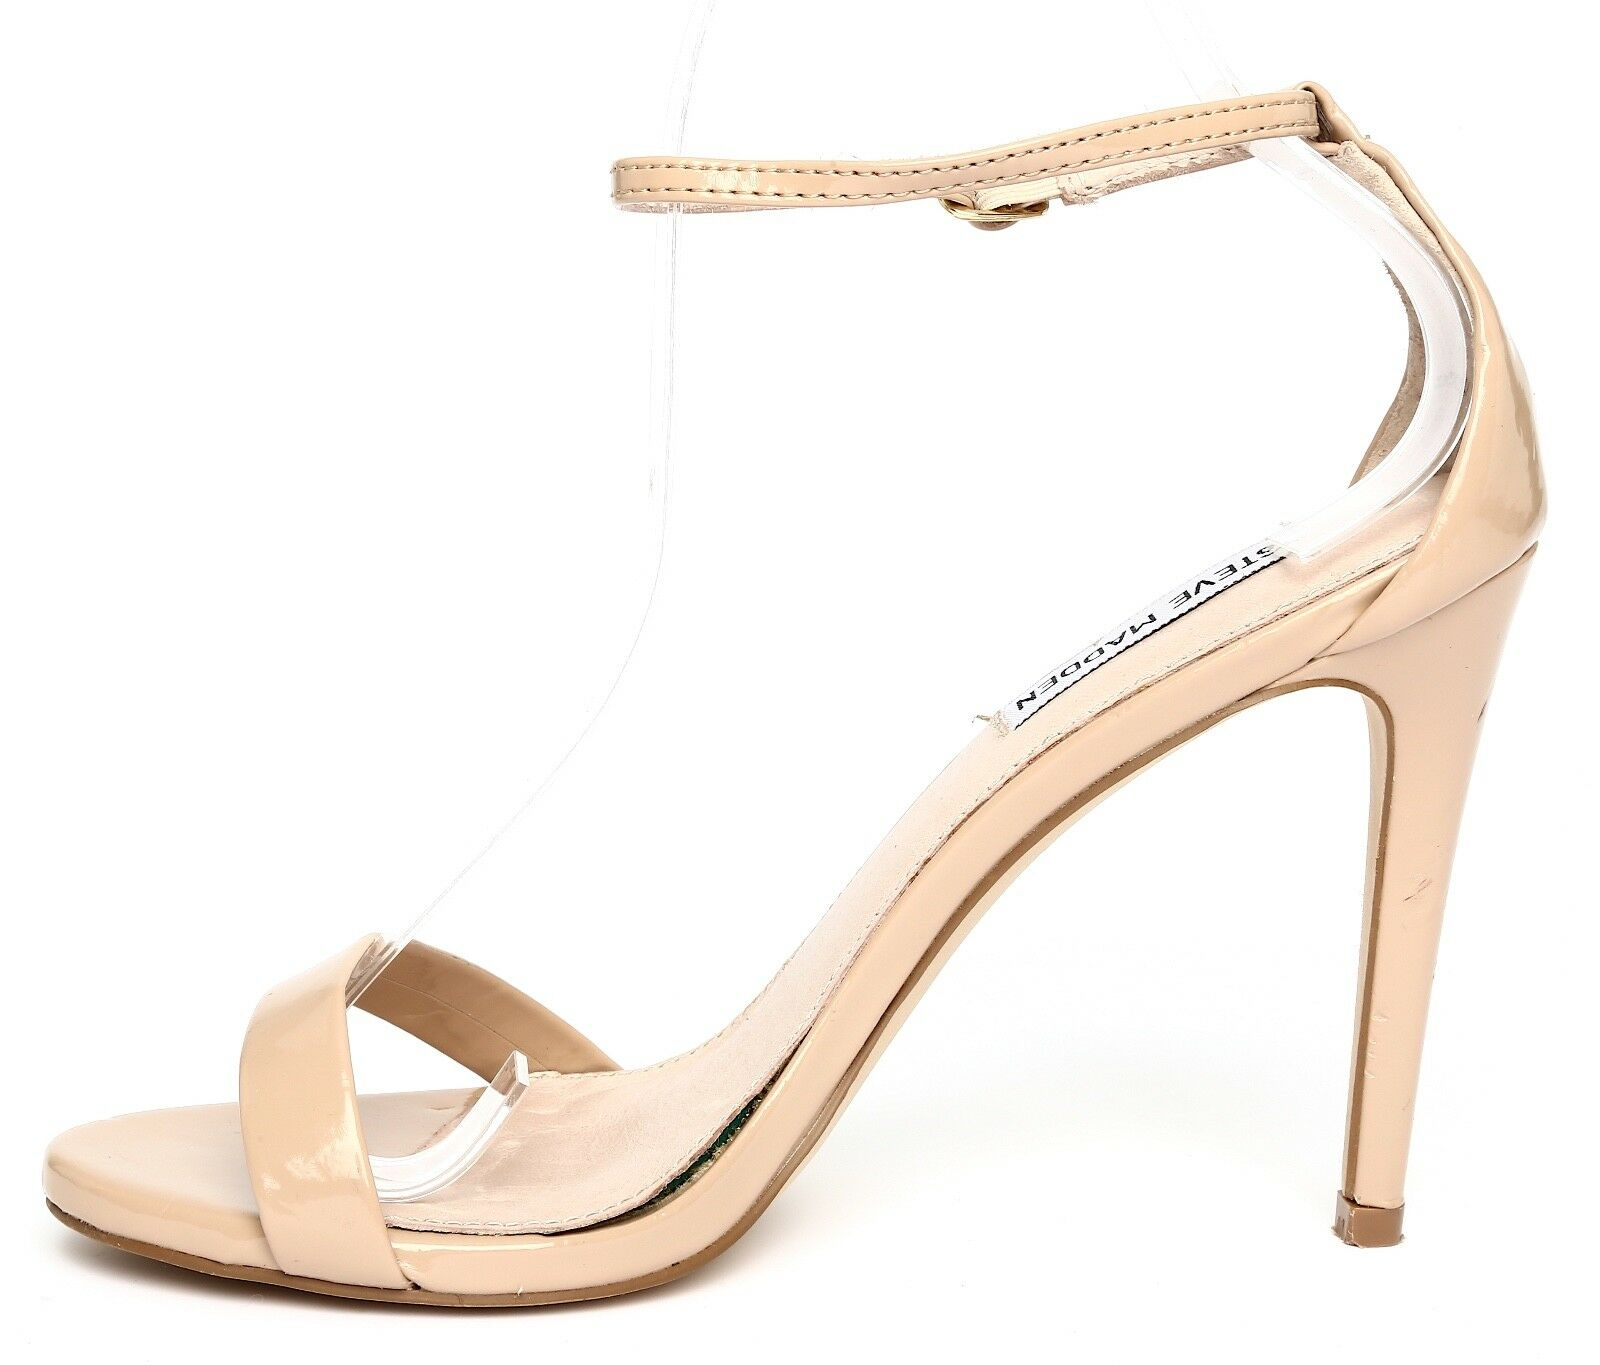 cf193394988 Steve Madden Stecy Patent Leather Nude Ankle Strap Sandal Heels Sz 7.5M 4508